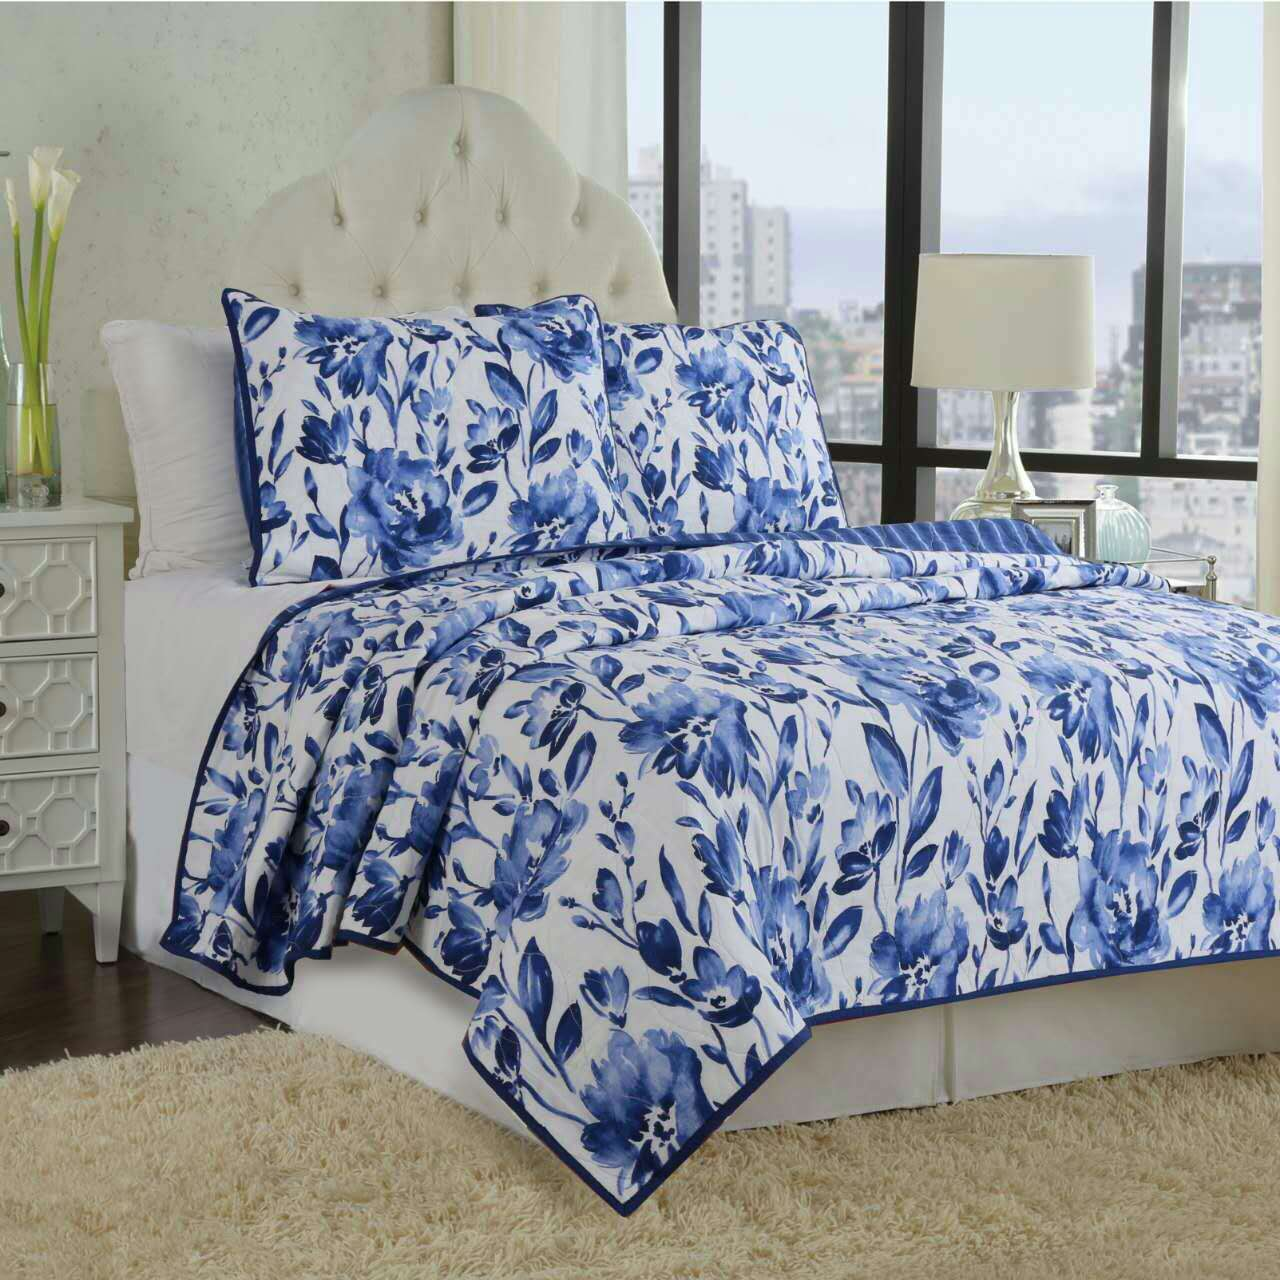 Blue Peony Print Patchwork Cotton King Size 3-Piece Bed in a Bag